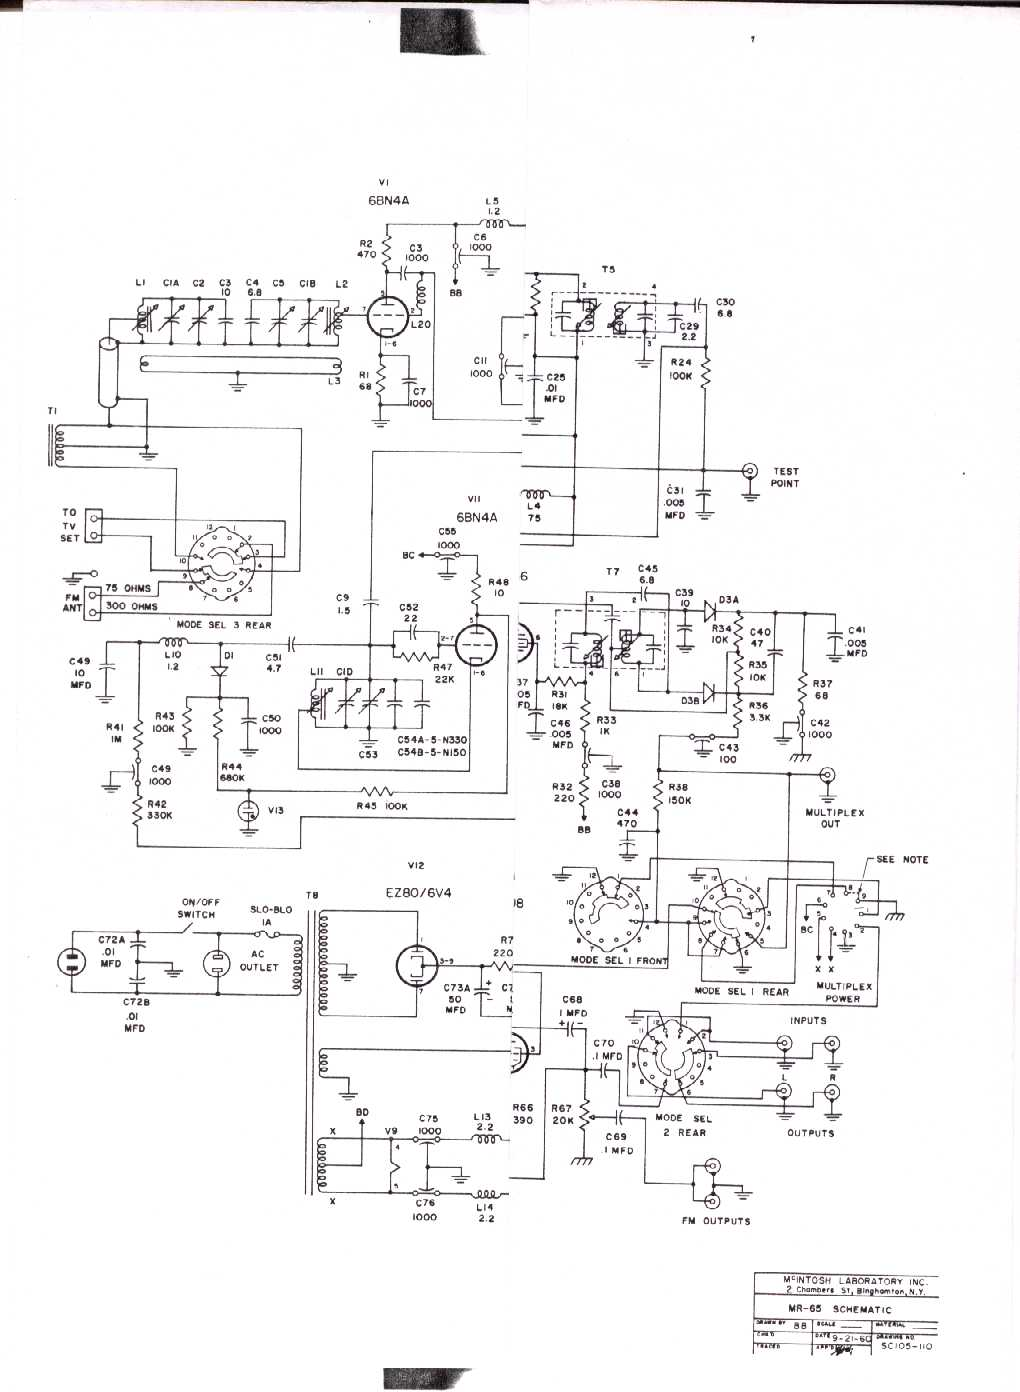 [DIAGRAM] Mitsubishi Shogun Pinin Wiring Diagram FULL